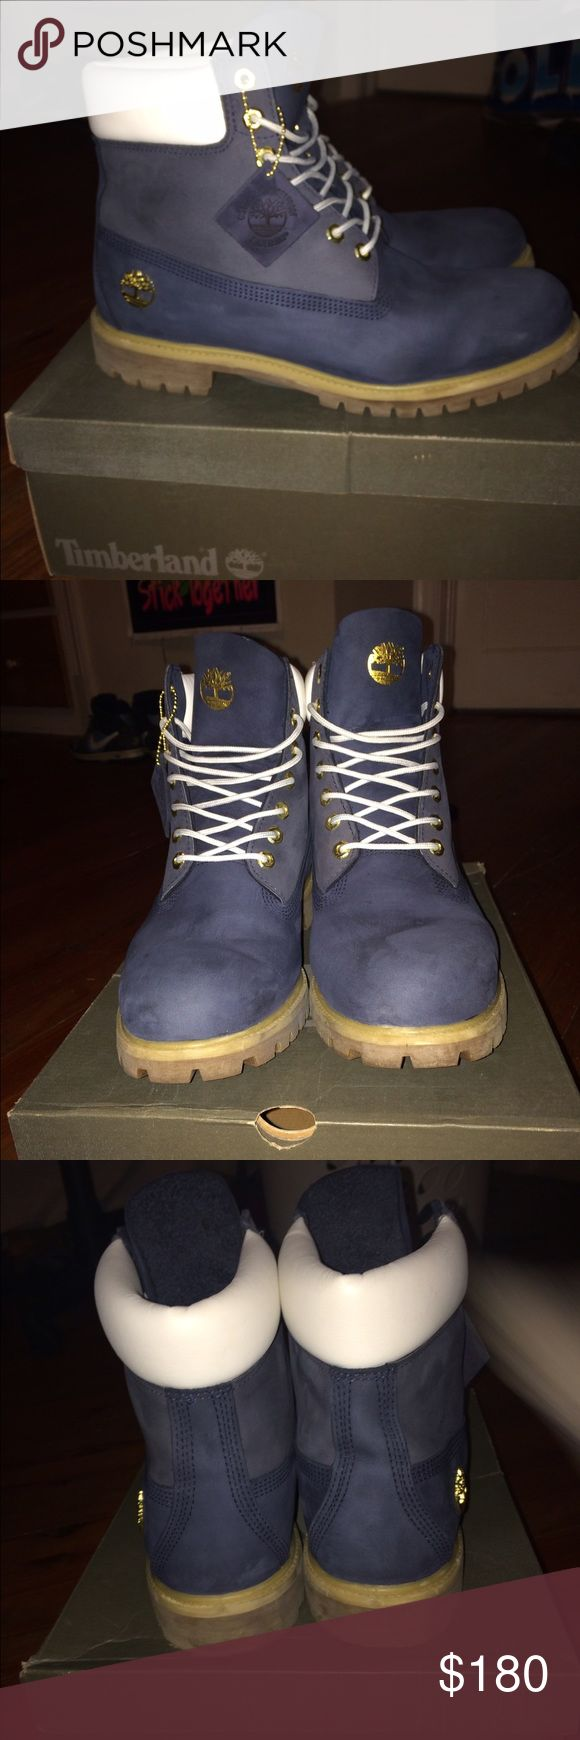 Limited Edition Blue/Gold/White Timberlands $180 OBO. Original price was $240. Only worn twice. My brother bought the wrong size, so they aren't comfortable for him to wear. Size 12.😊 Timberland Shoes Boots